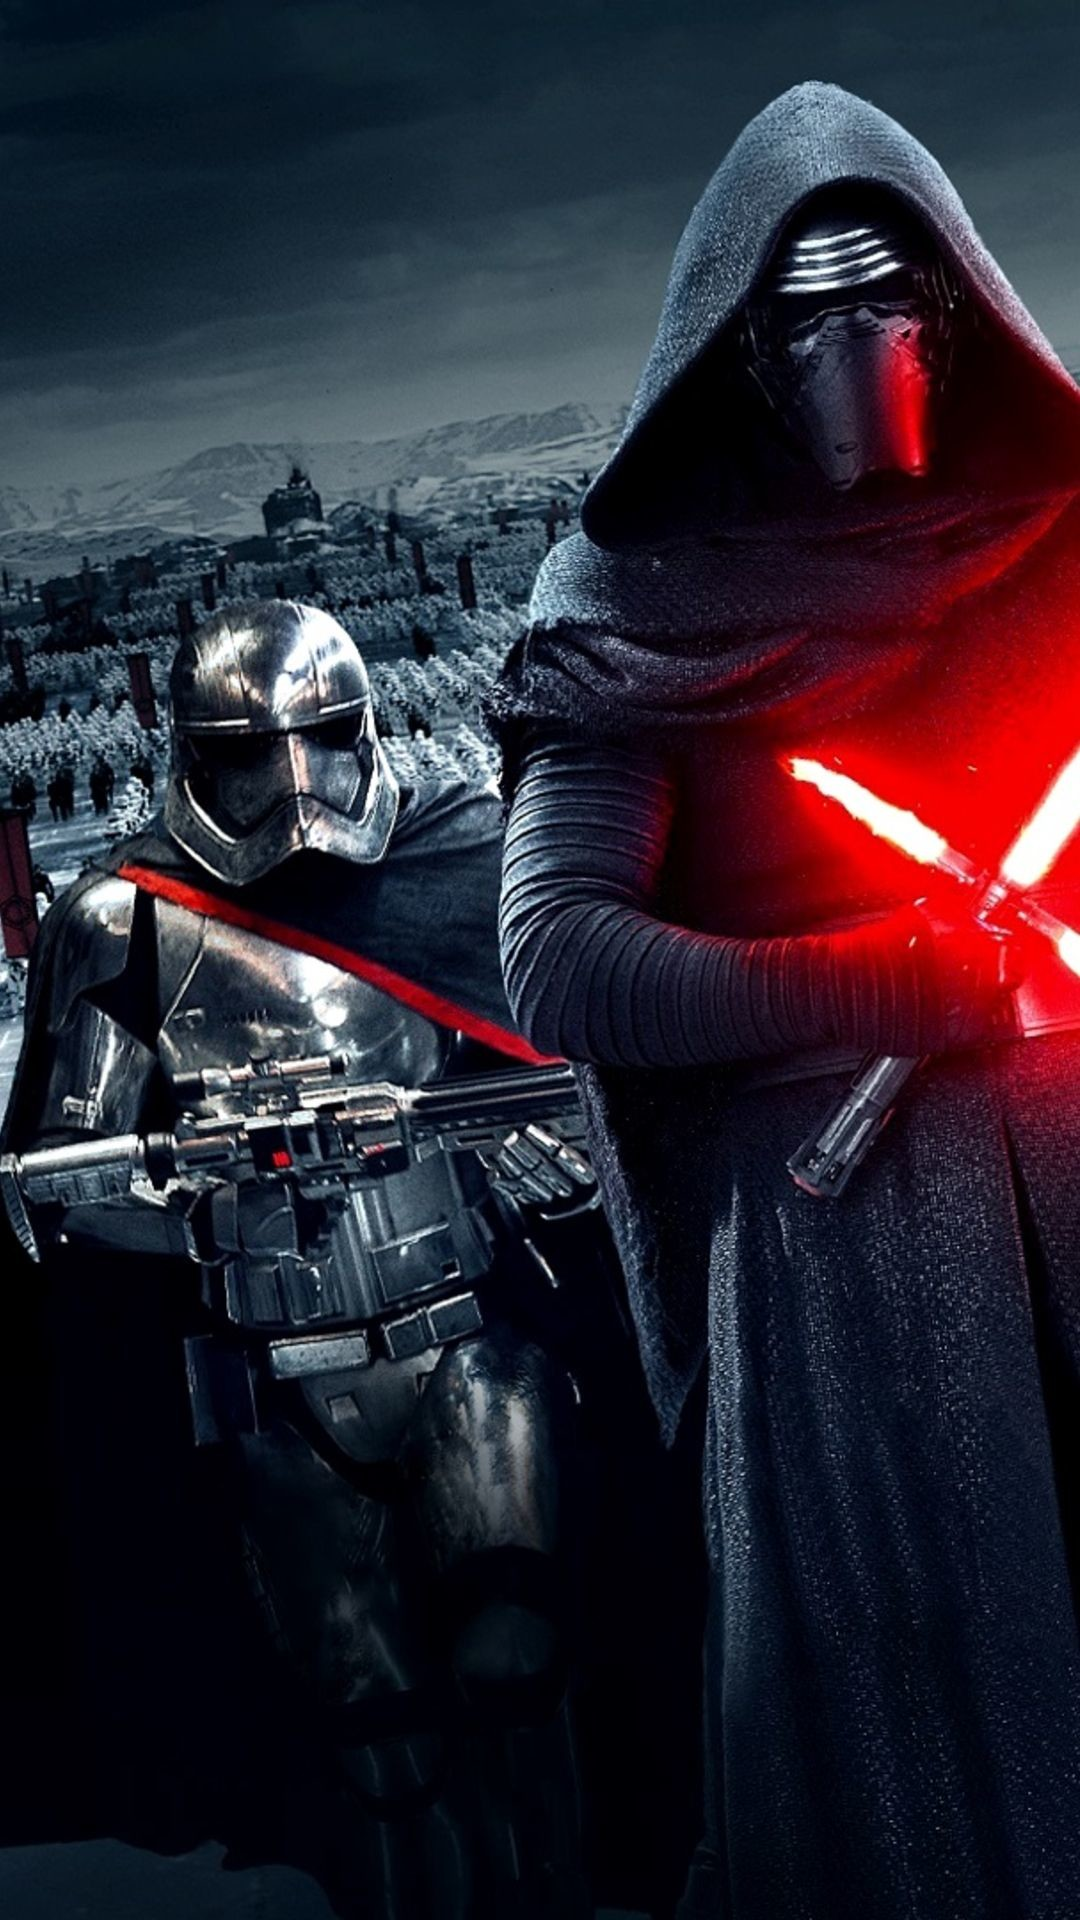 1080x1920 Star Wars The Force Awakens Wallpaper Kylo Ren Lightsaber. Download:  iPhone. Star Wars The Force ...